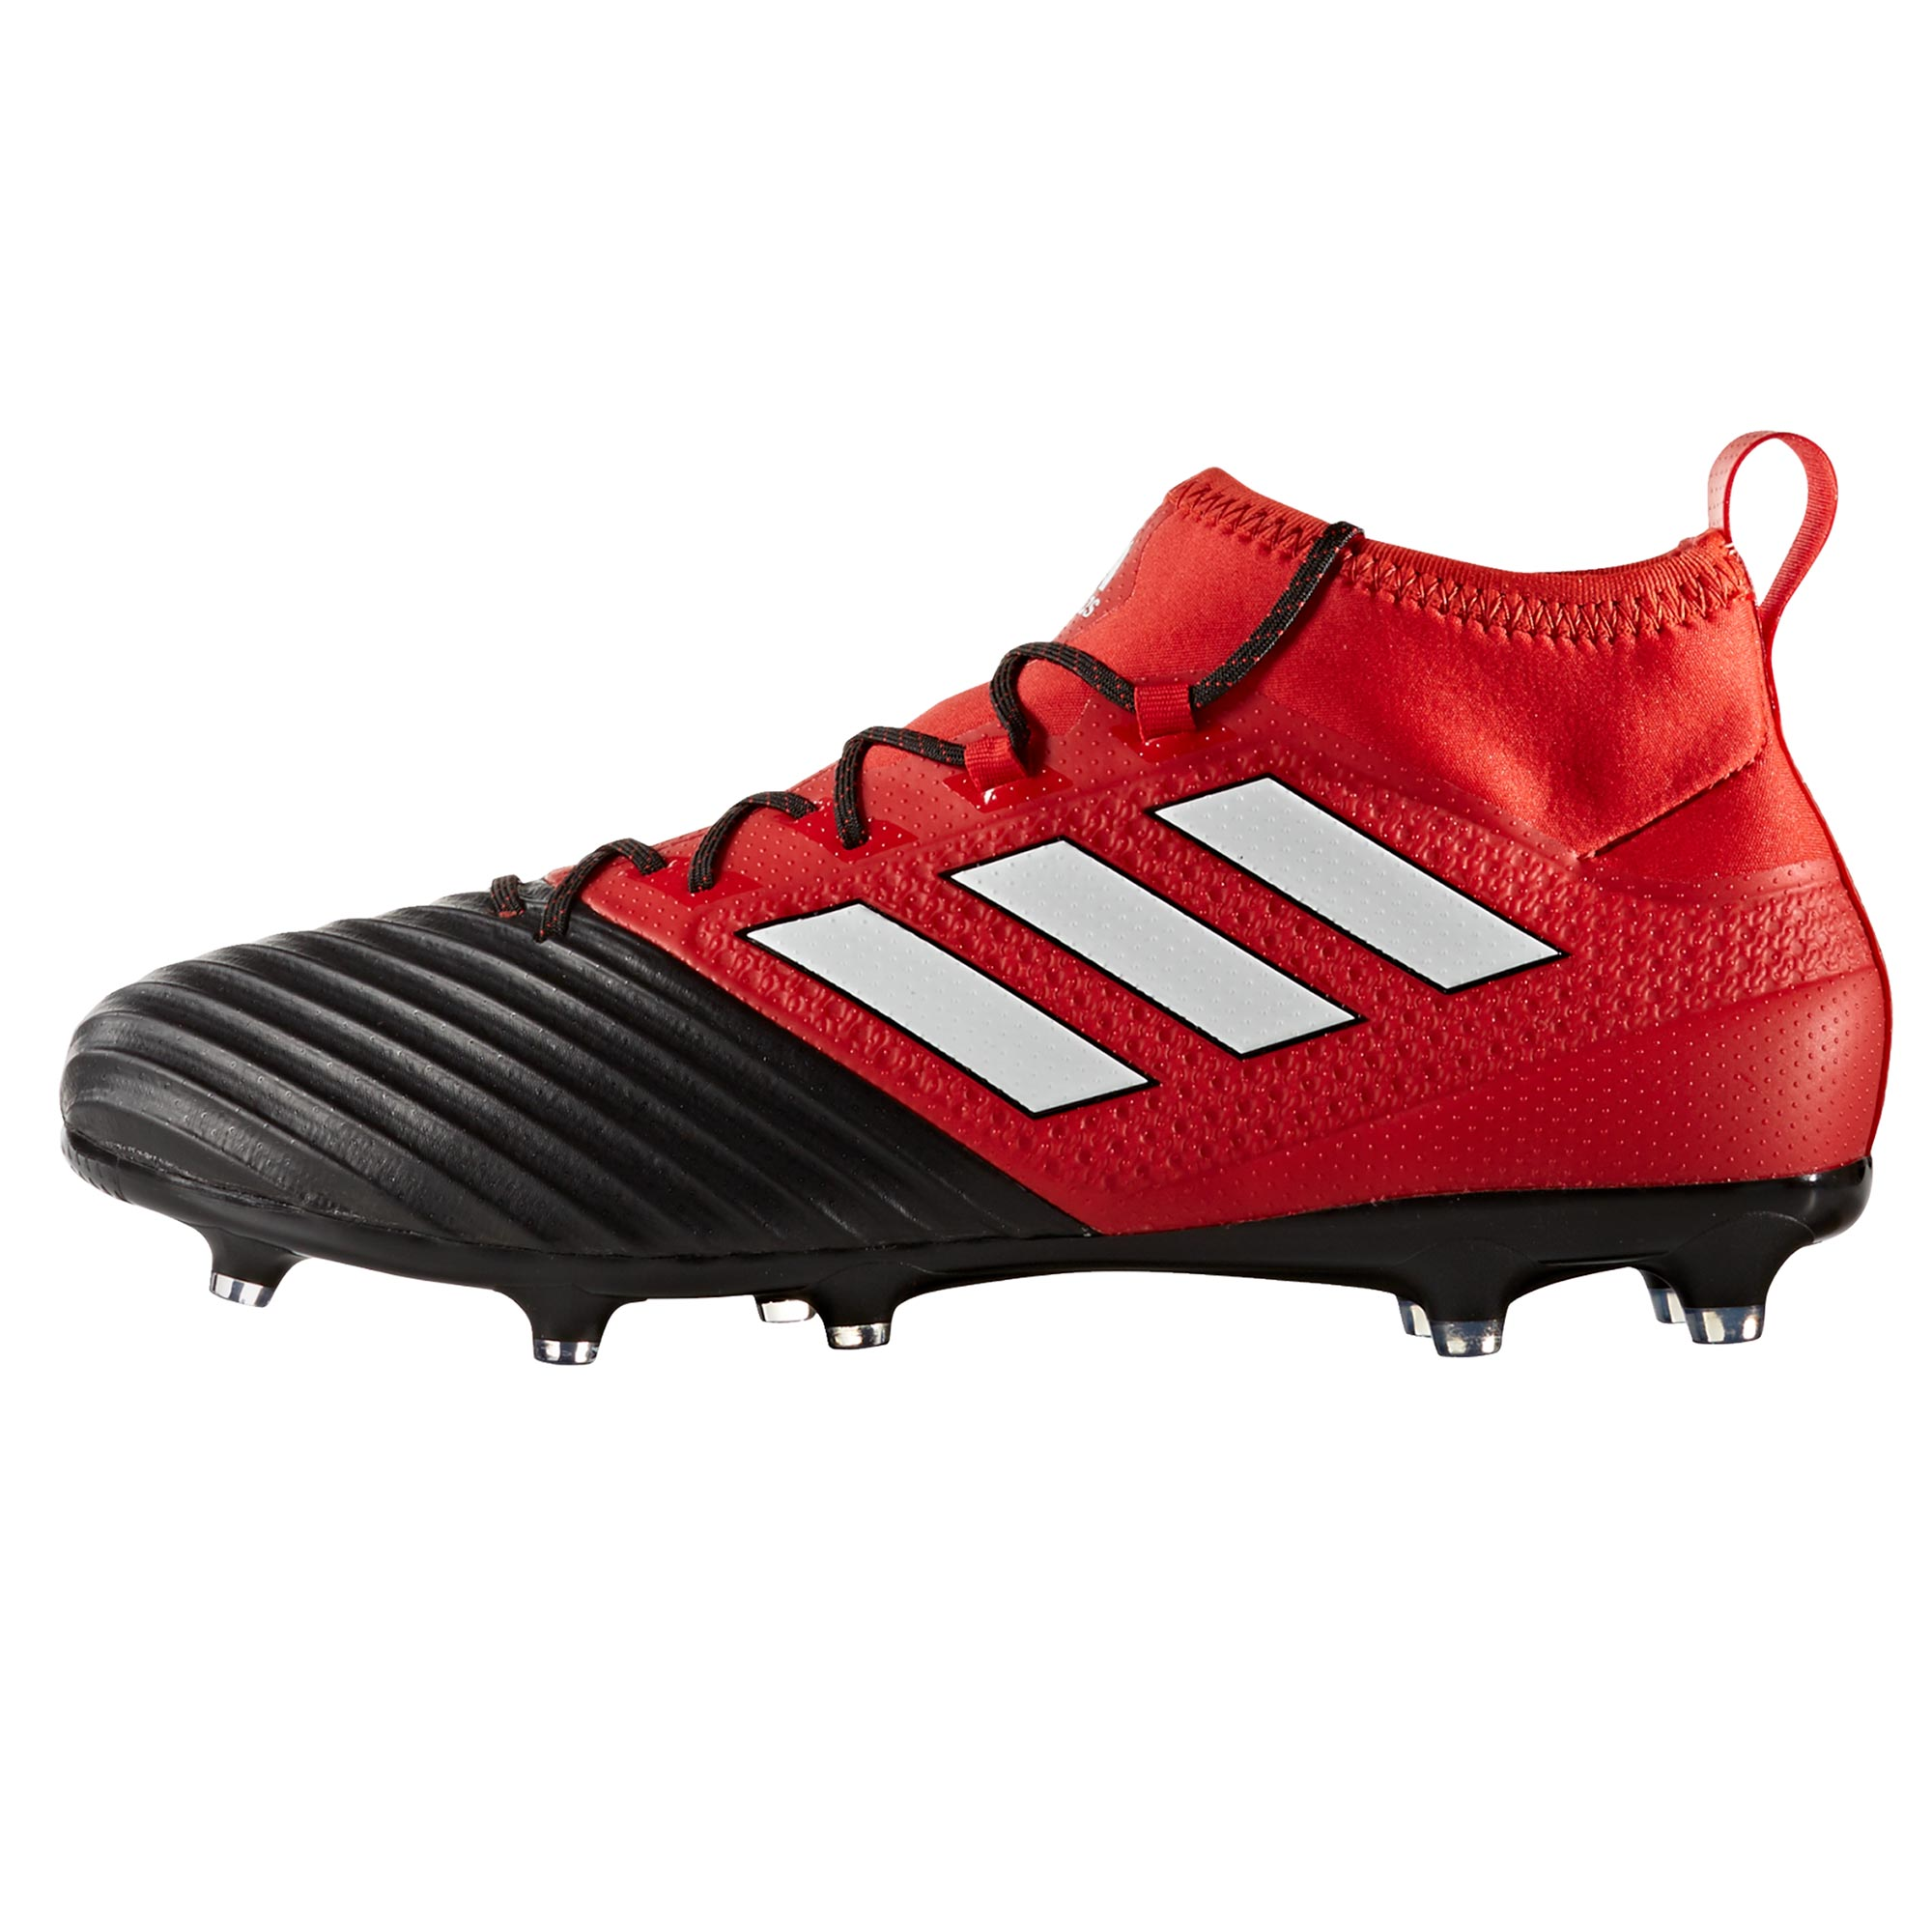 Image of adidas Ace 17.2 Primemesh Firm Ground Football Boots - Red/White/Core